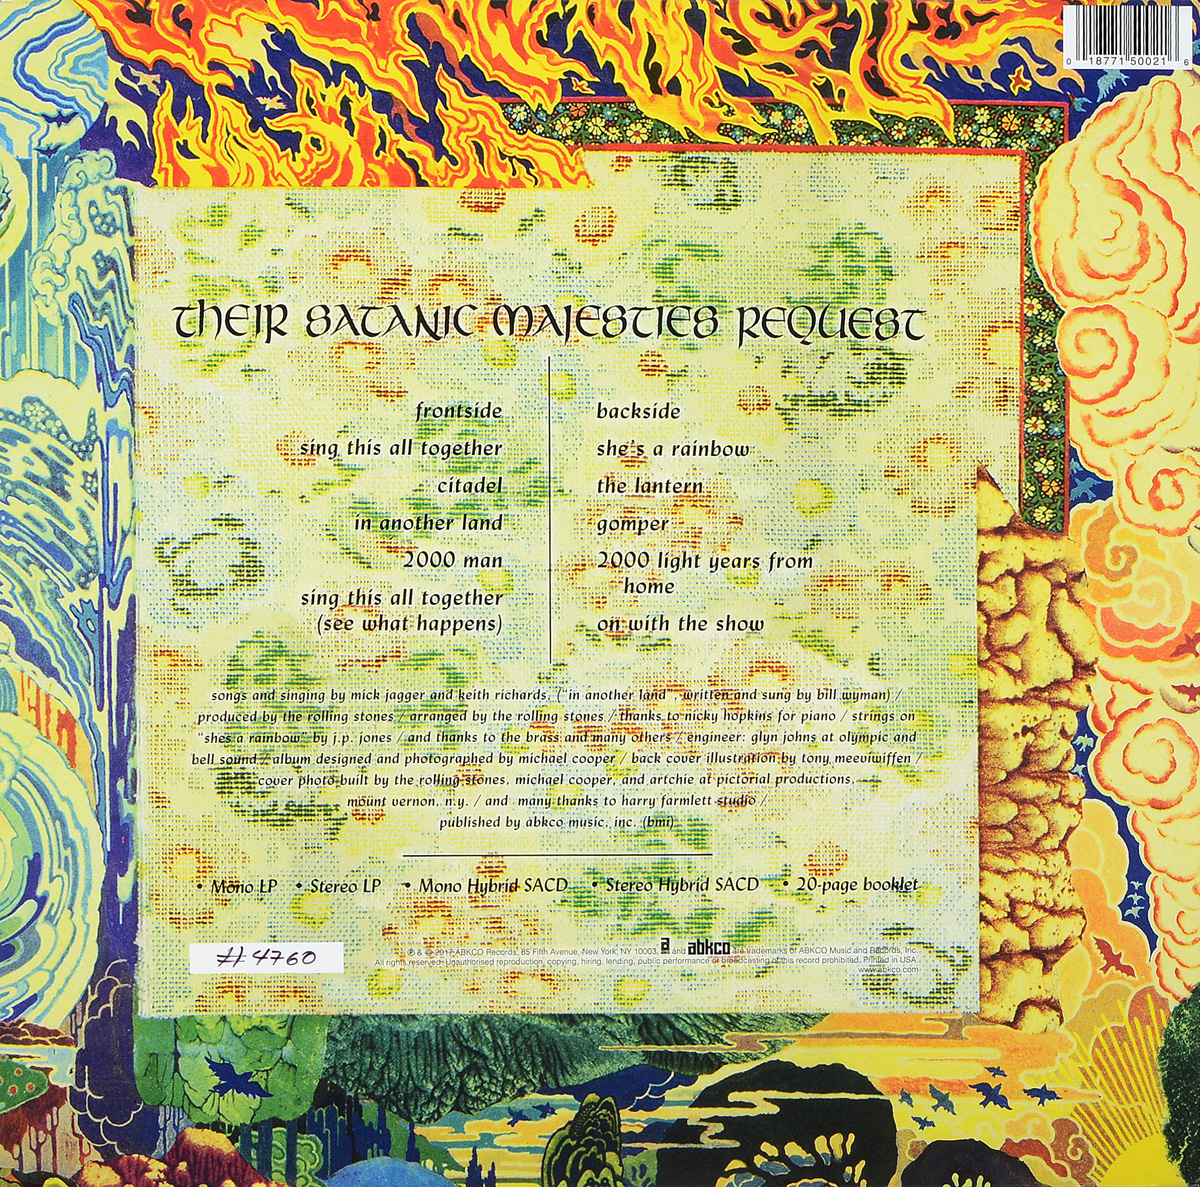 Rolling Stones. The Their Satanic Majesties Request (2 LP + 2 SACD) ABKCO Records